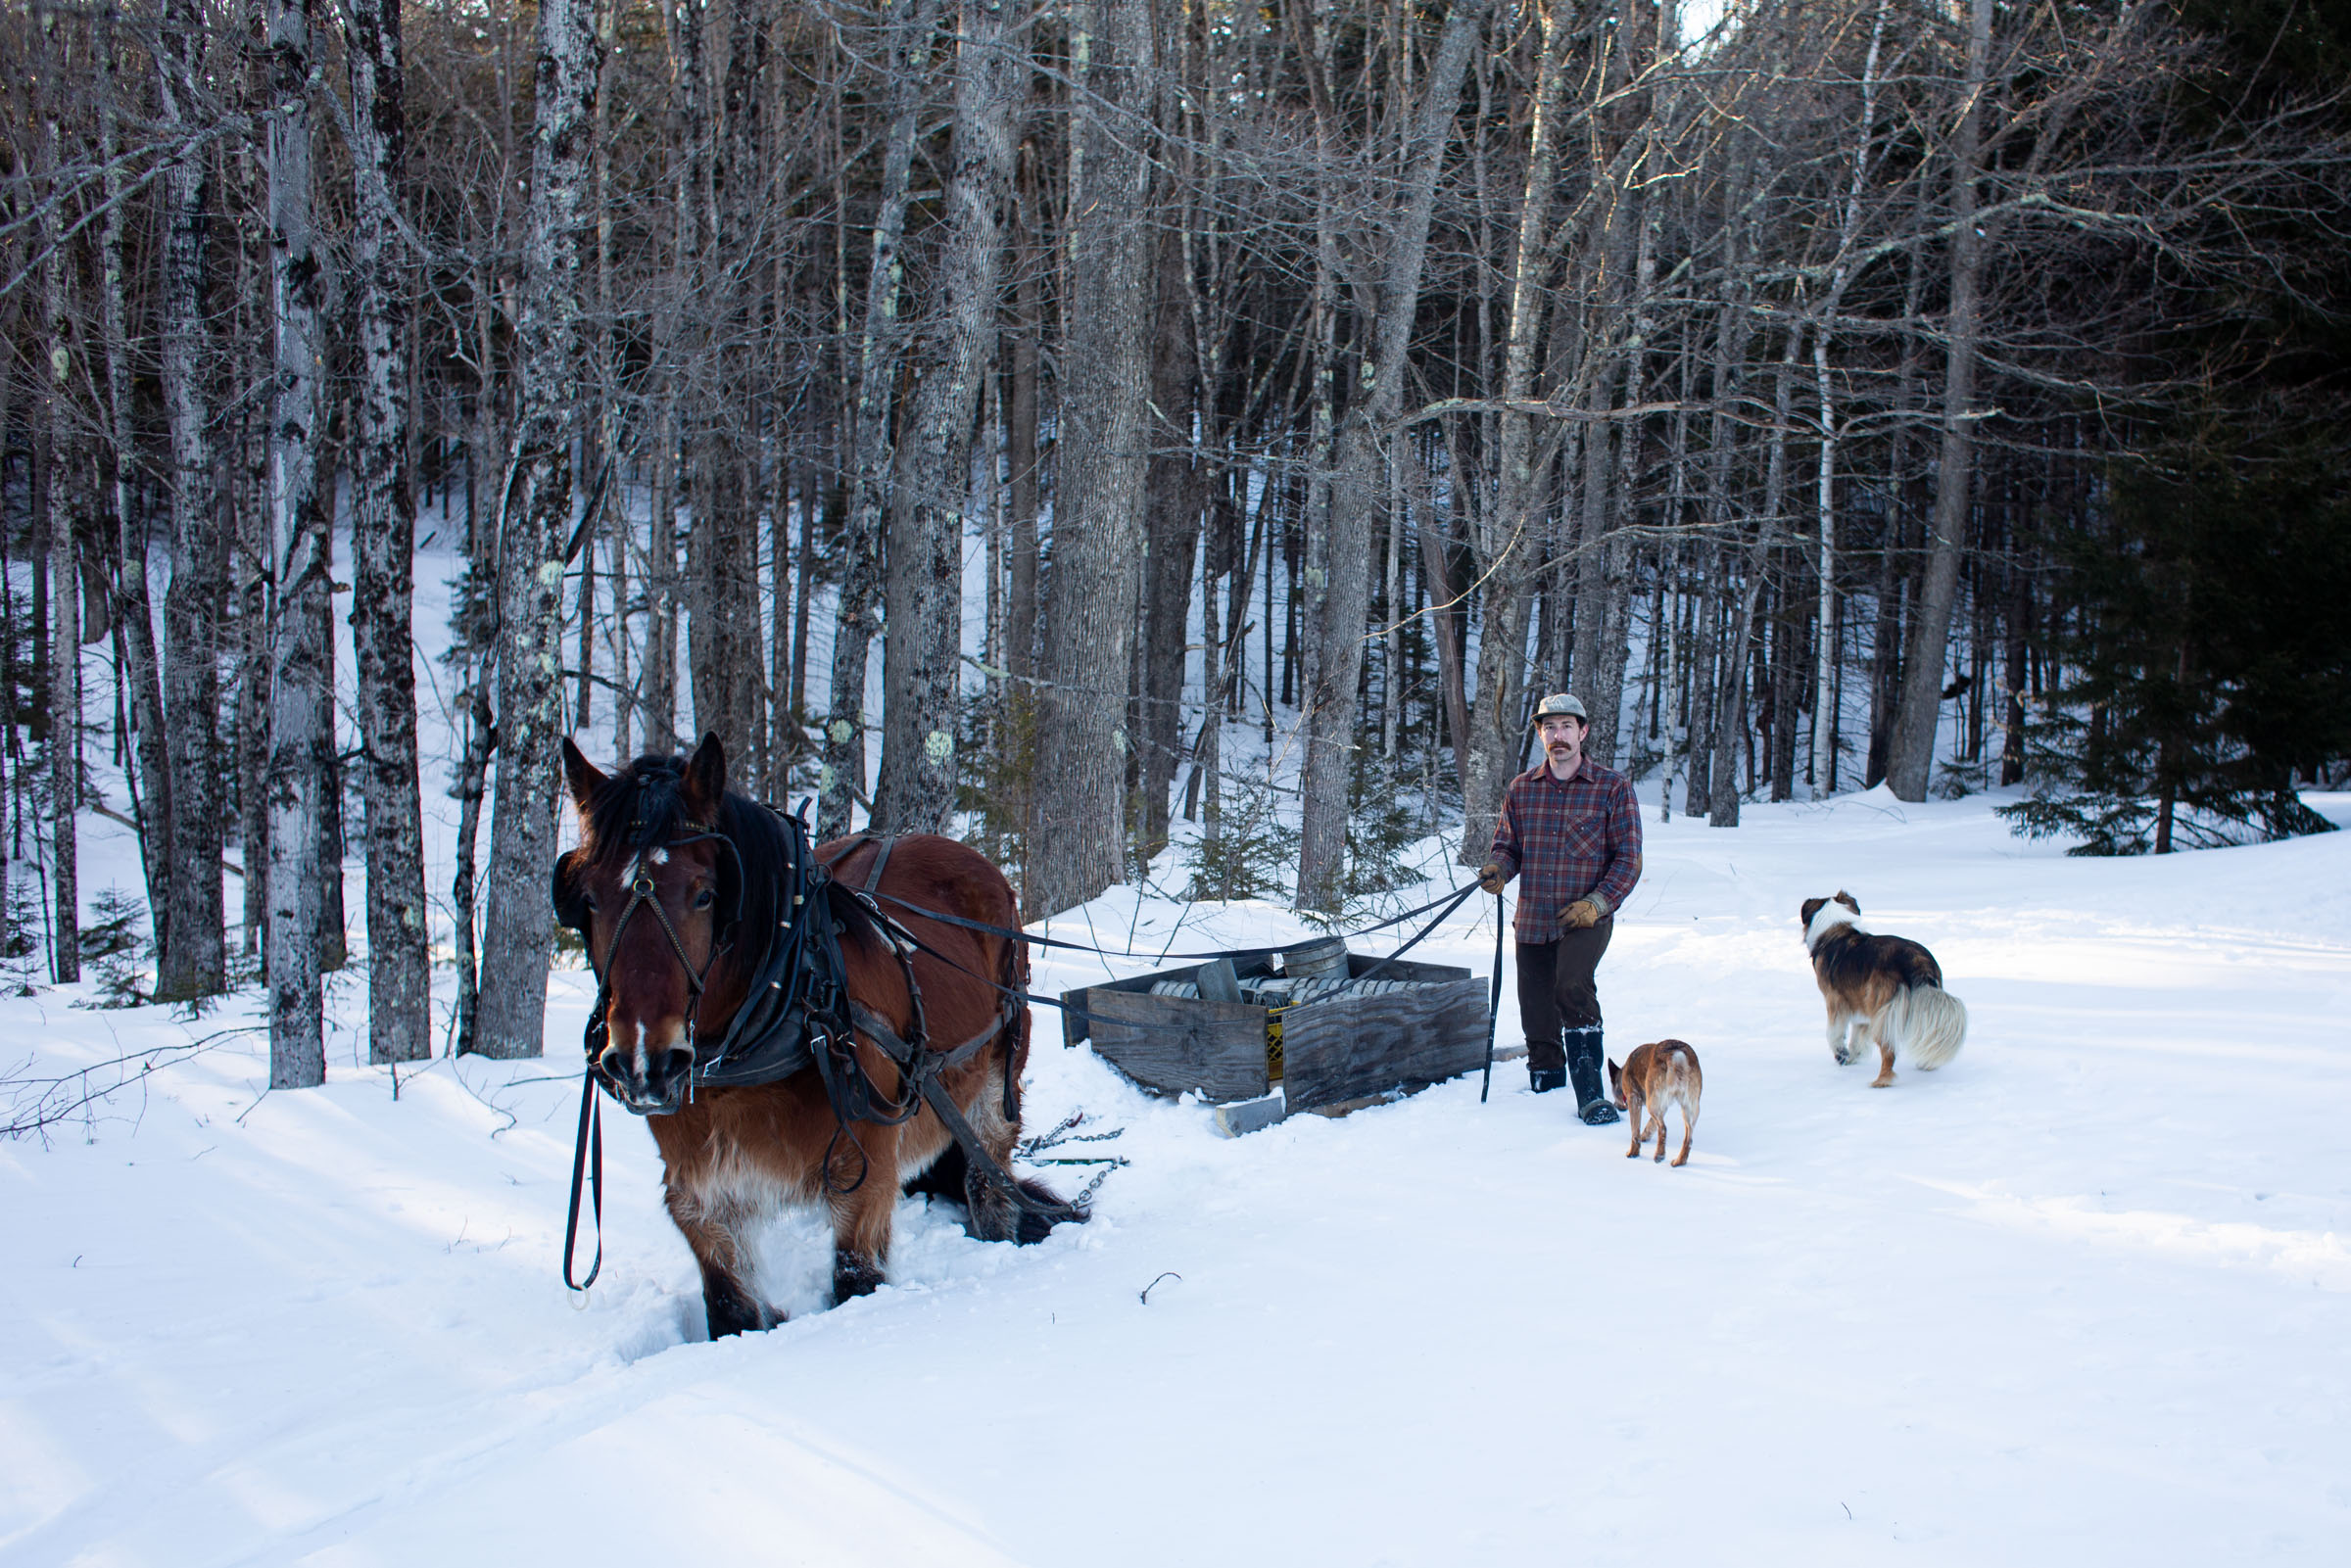 Horse powered Vermont maple syrup at Stitchdown Farm